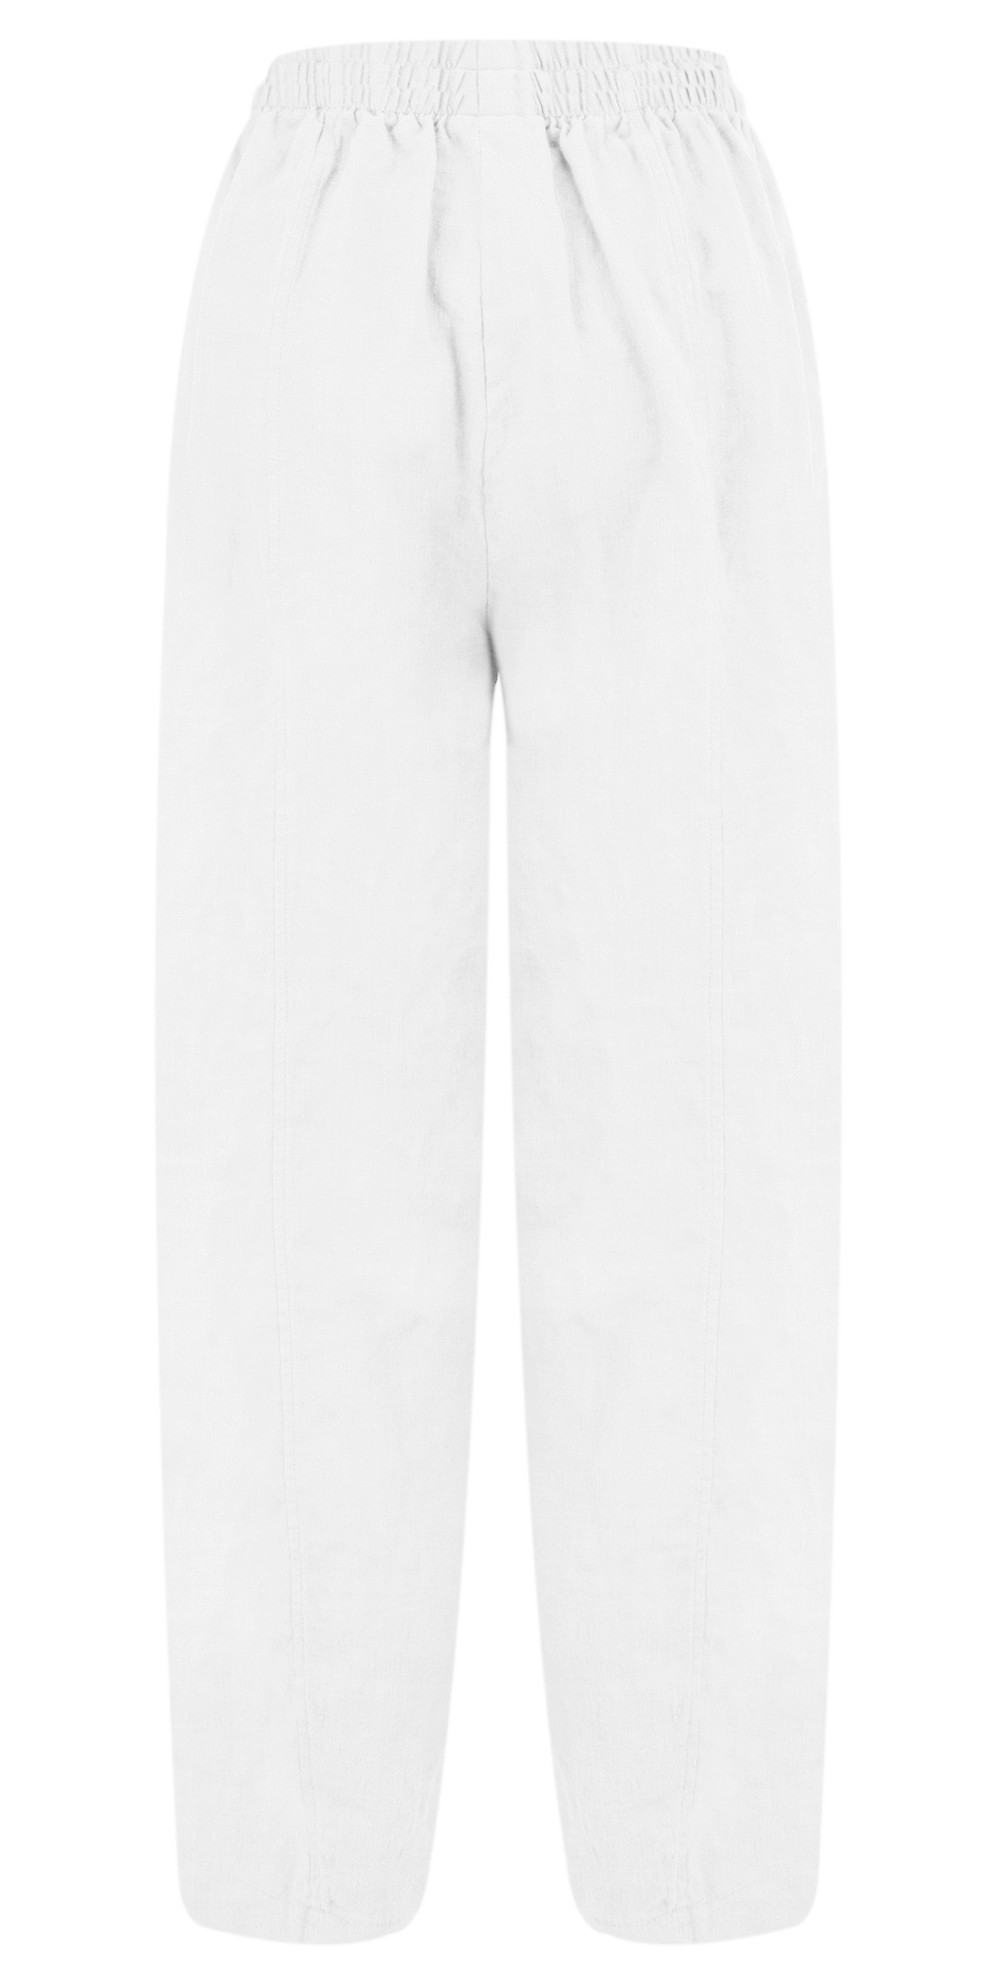 Linen Easy Fit Trouser main image